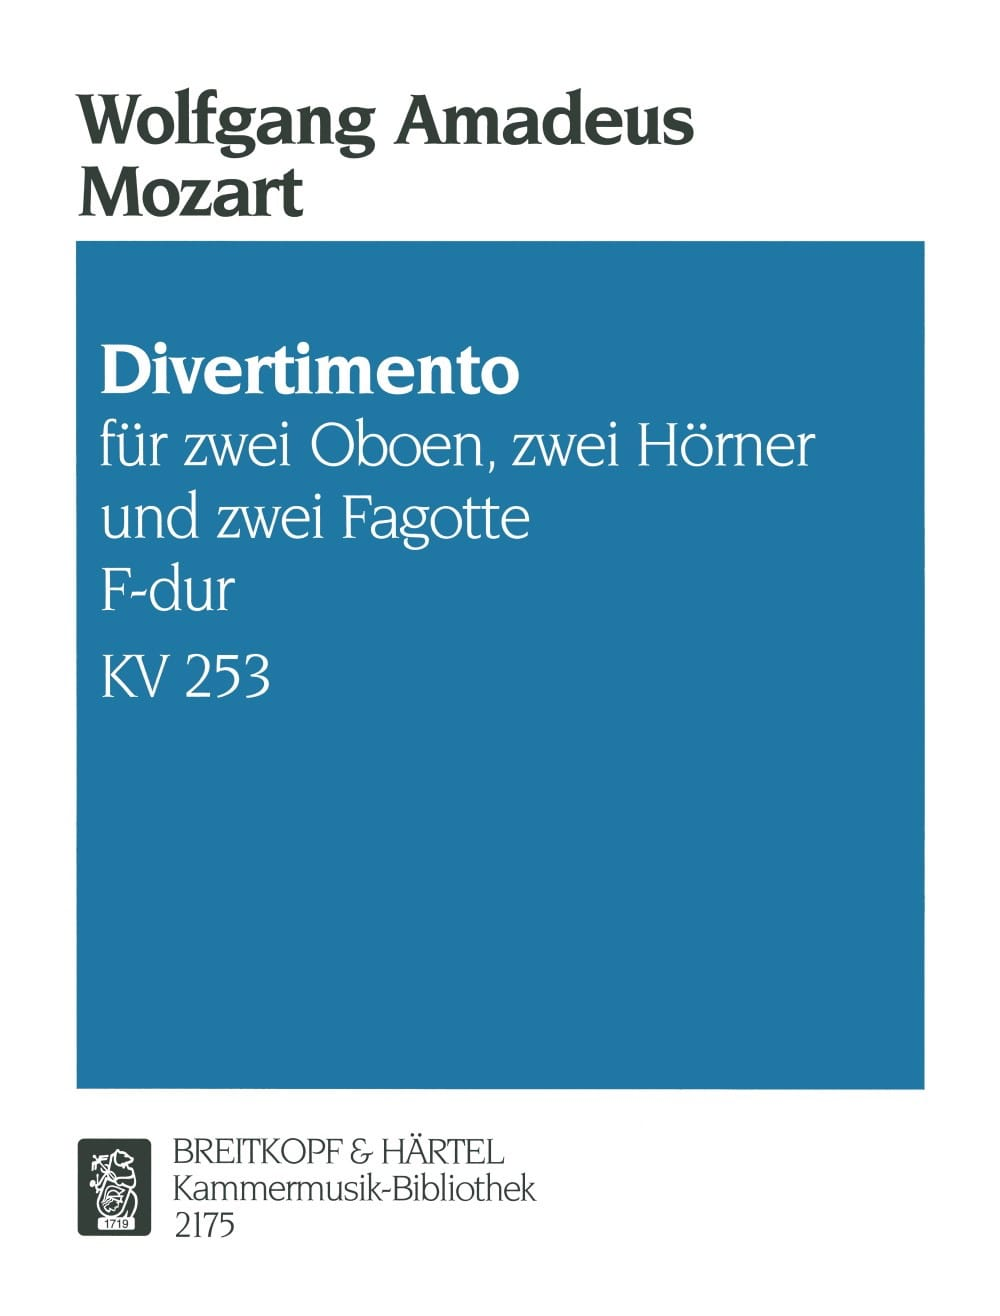 MOZART - Divertimento F-Dur KV 253 - Bläsersextett - Stimmen - Partition - di-arezzo.co.uk